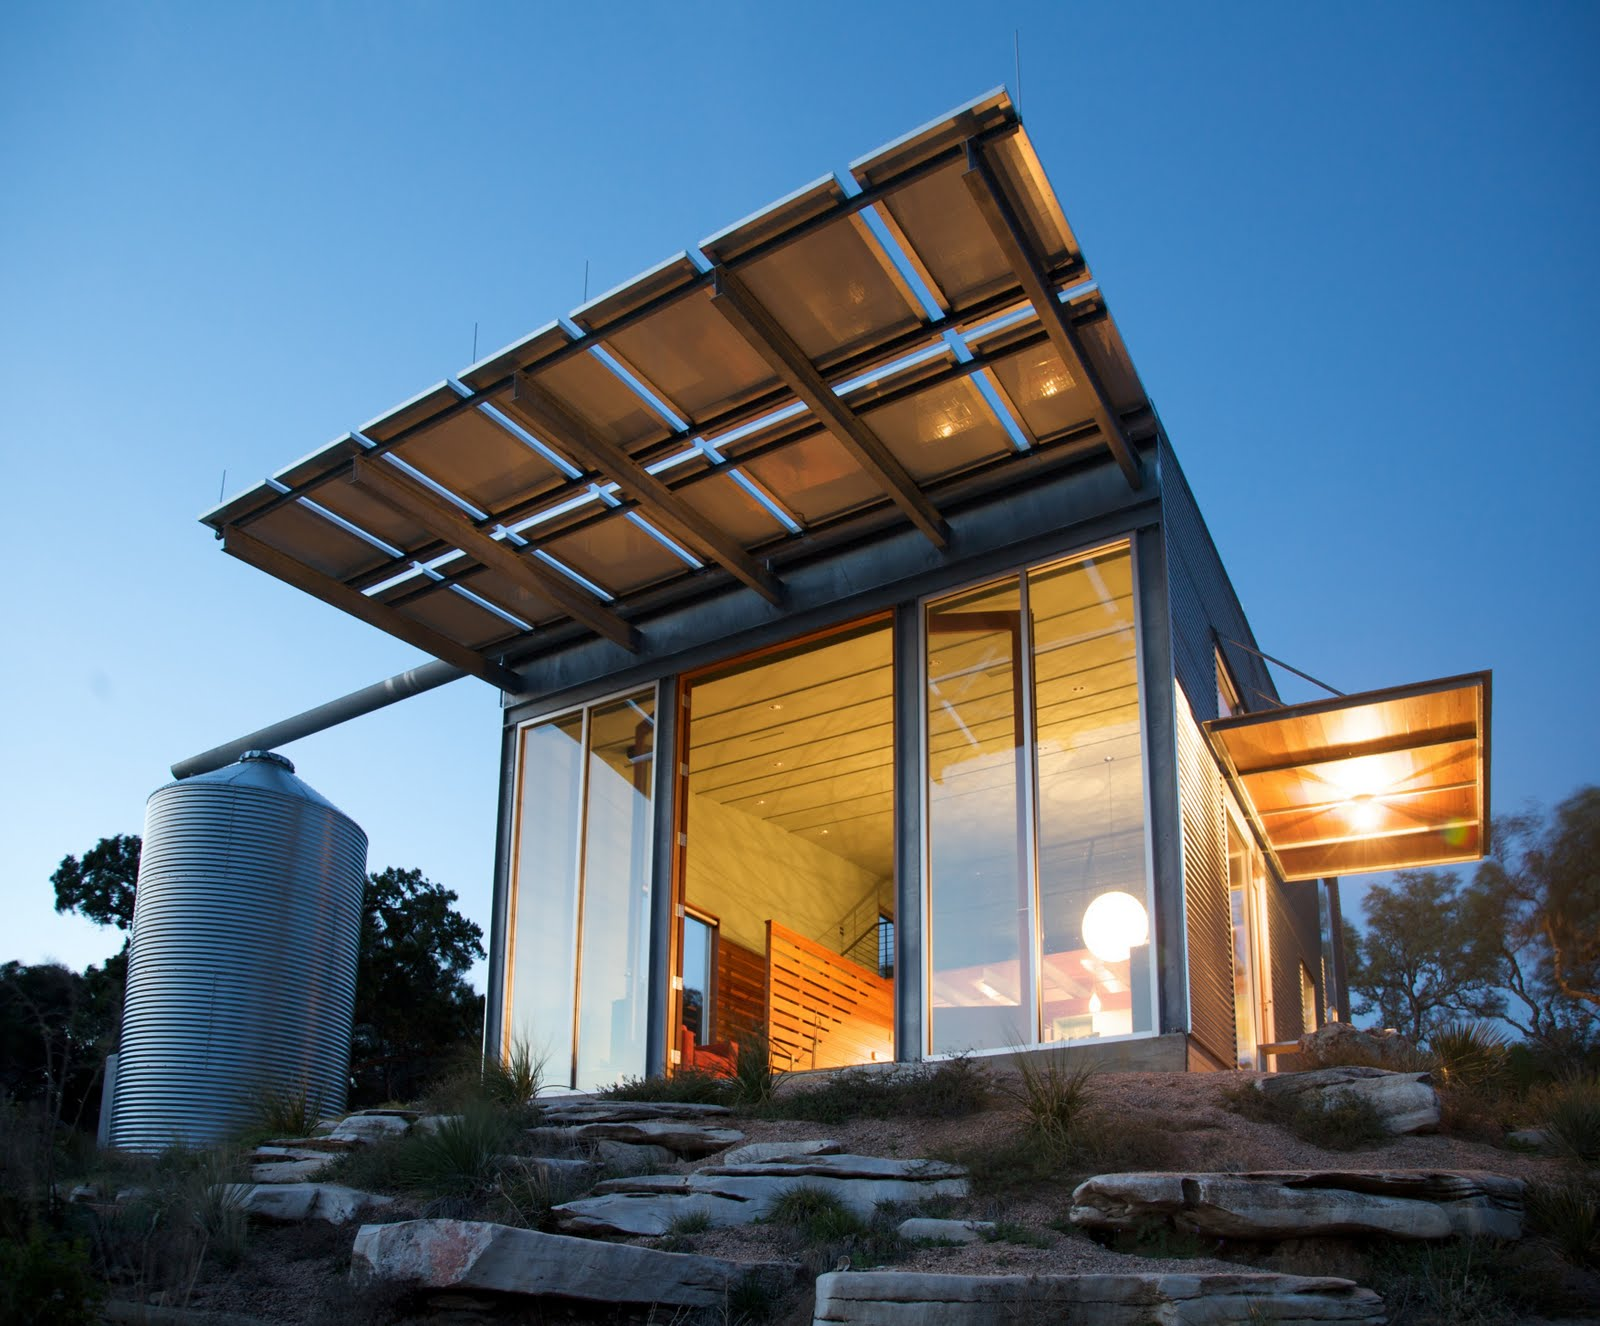 Texas society of architects texas architect design awards for Architectural design issues